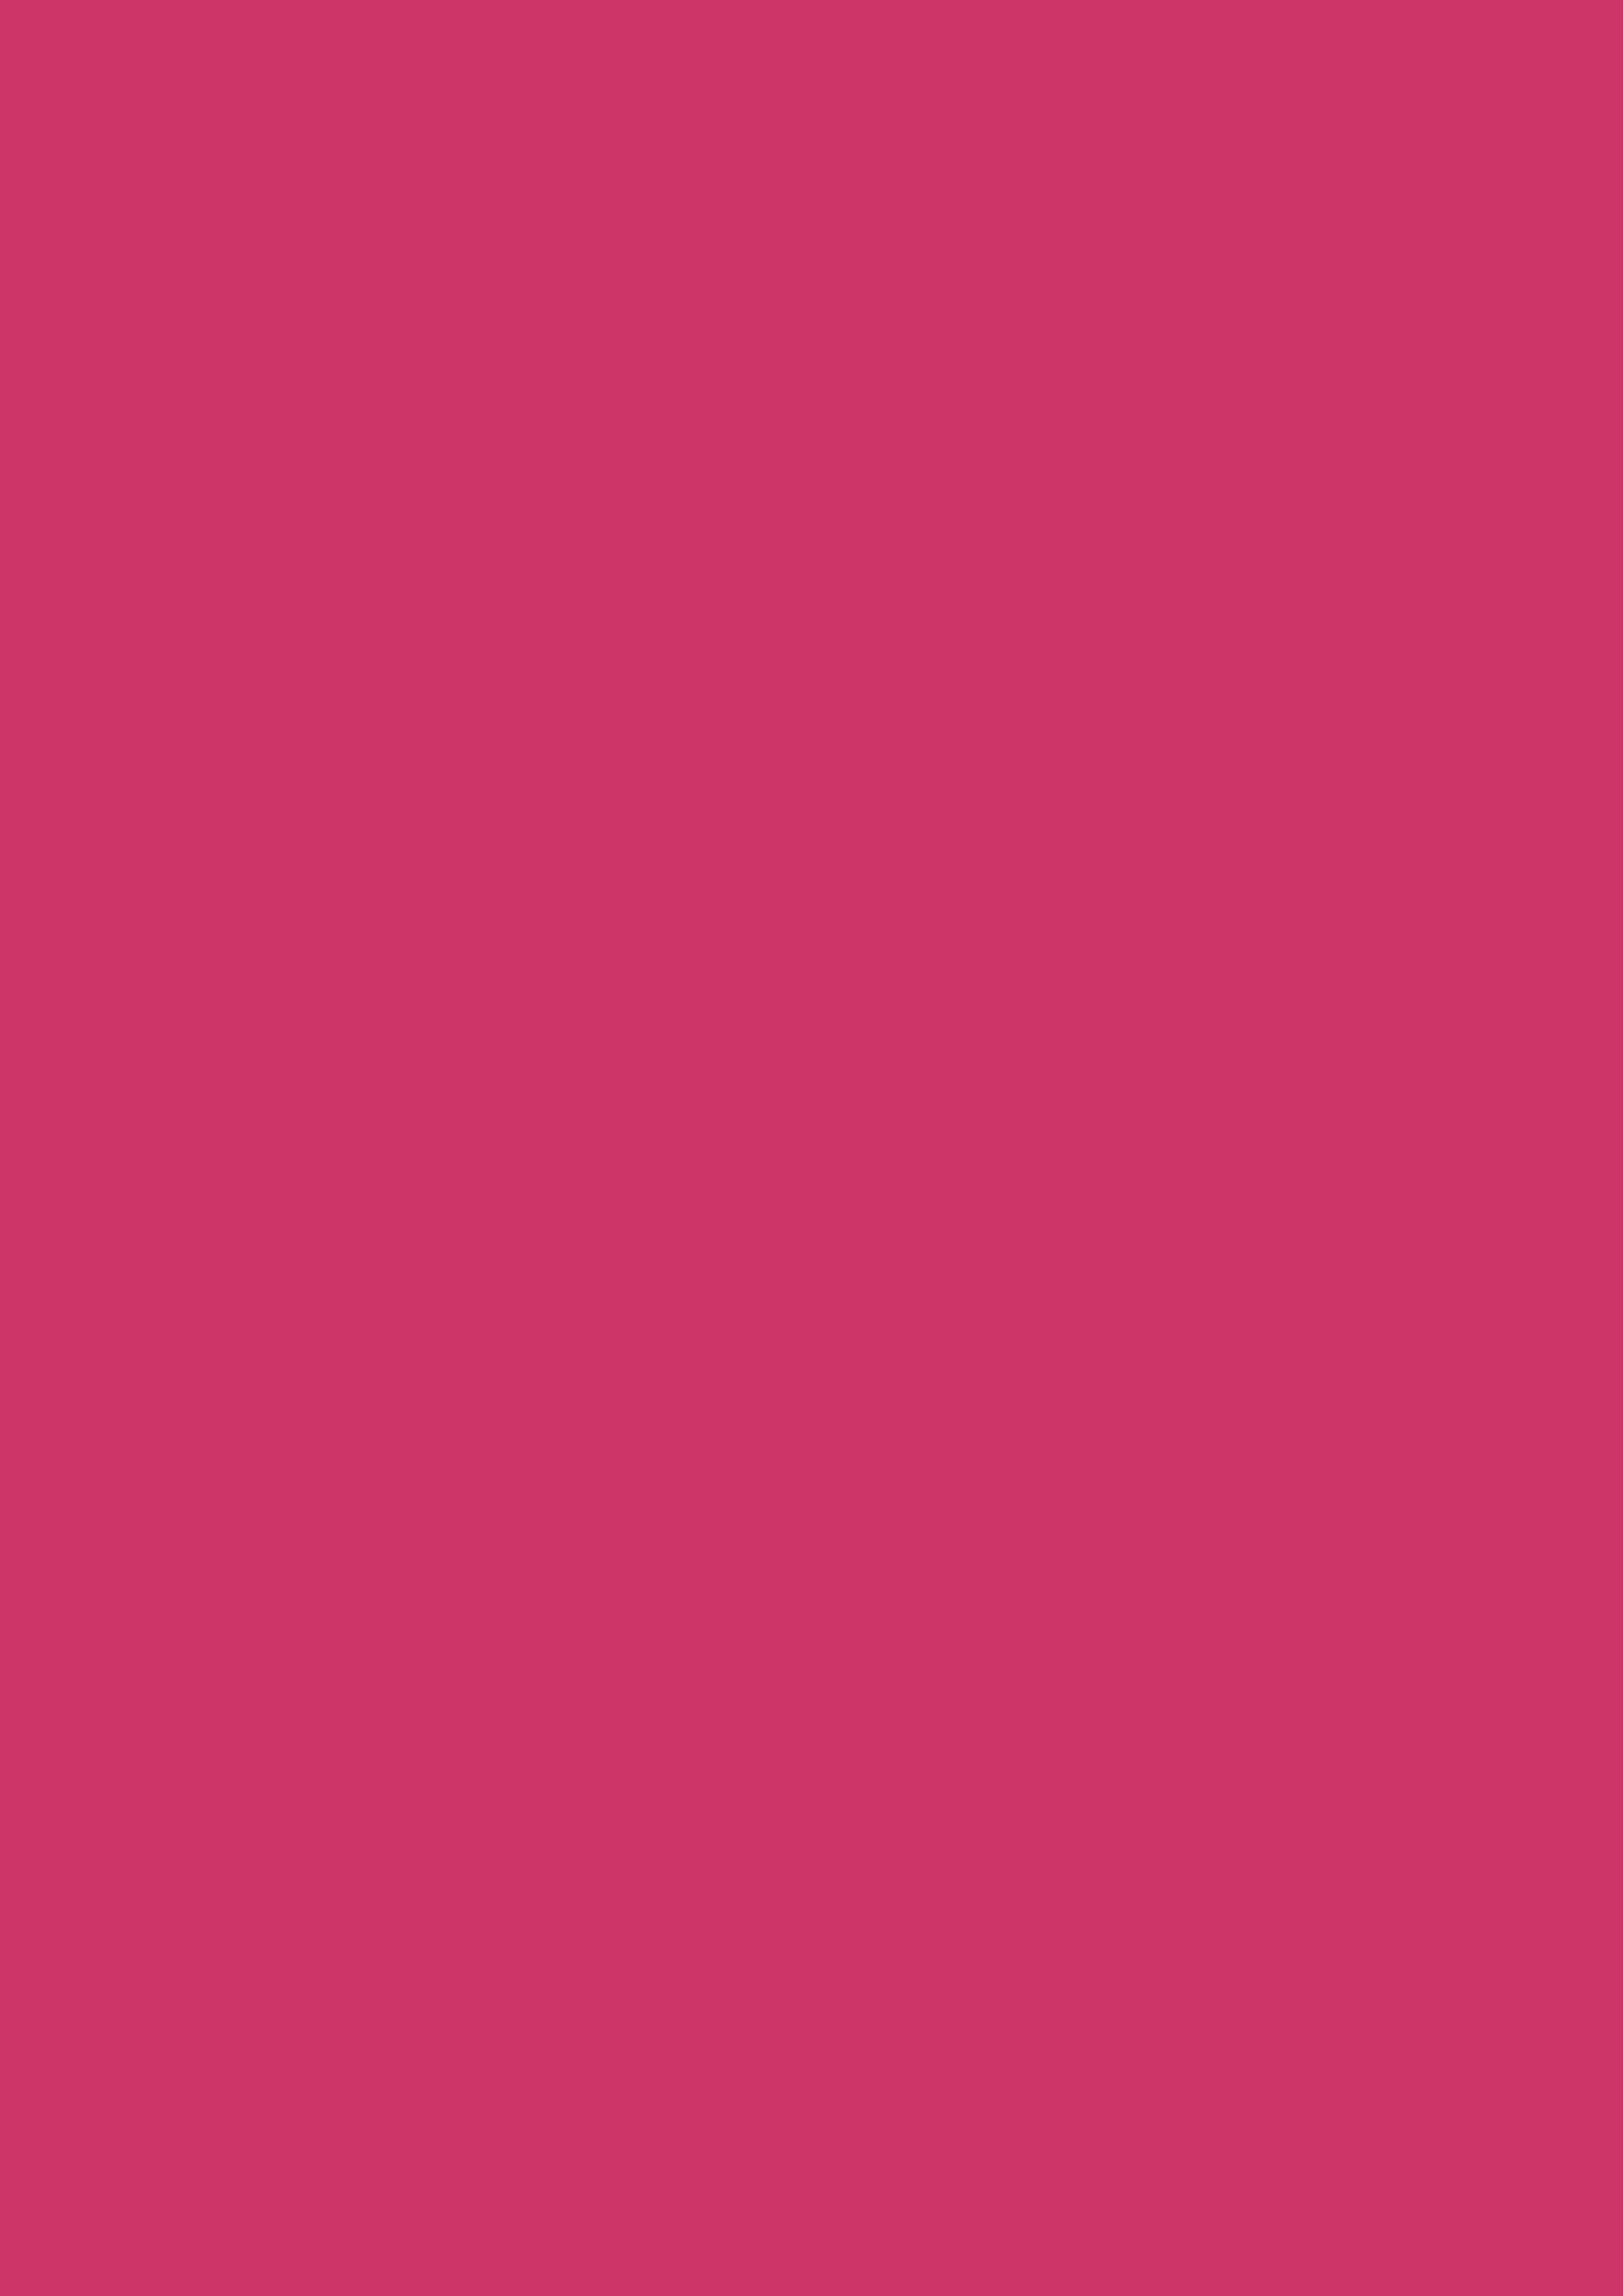 2480x3508 Steel Pink Solid Color Background